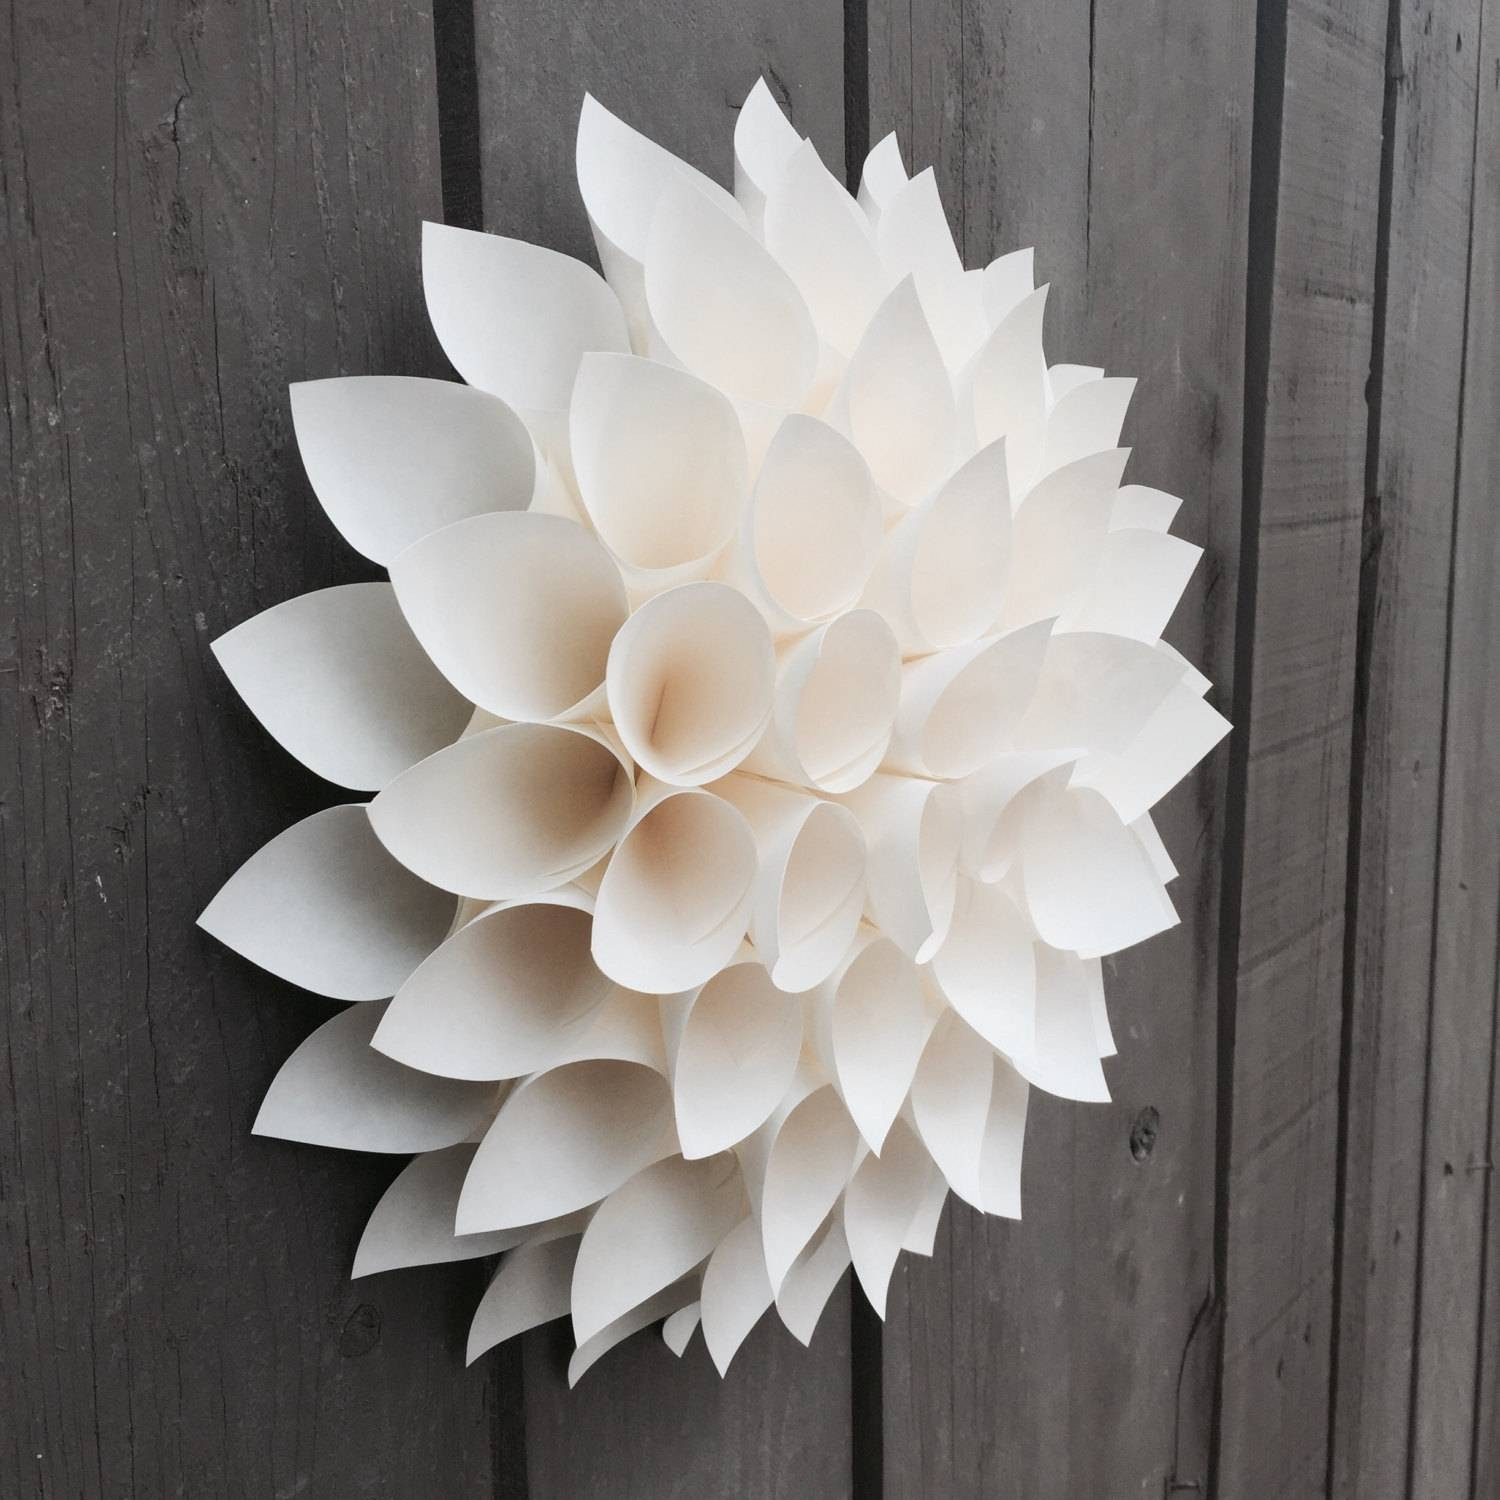 Best ideas about 3D Wall Art . Save or Pin 20 Best Ideas of 3D Flower Wall Art Now.